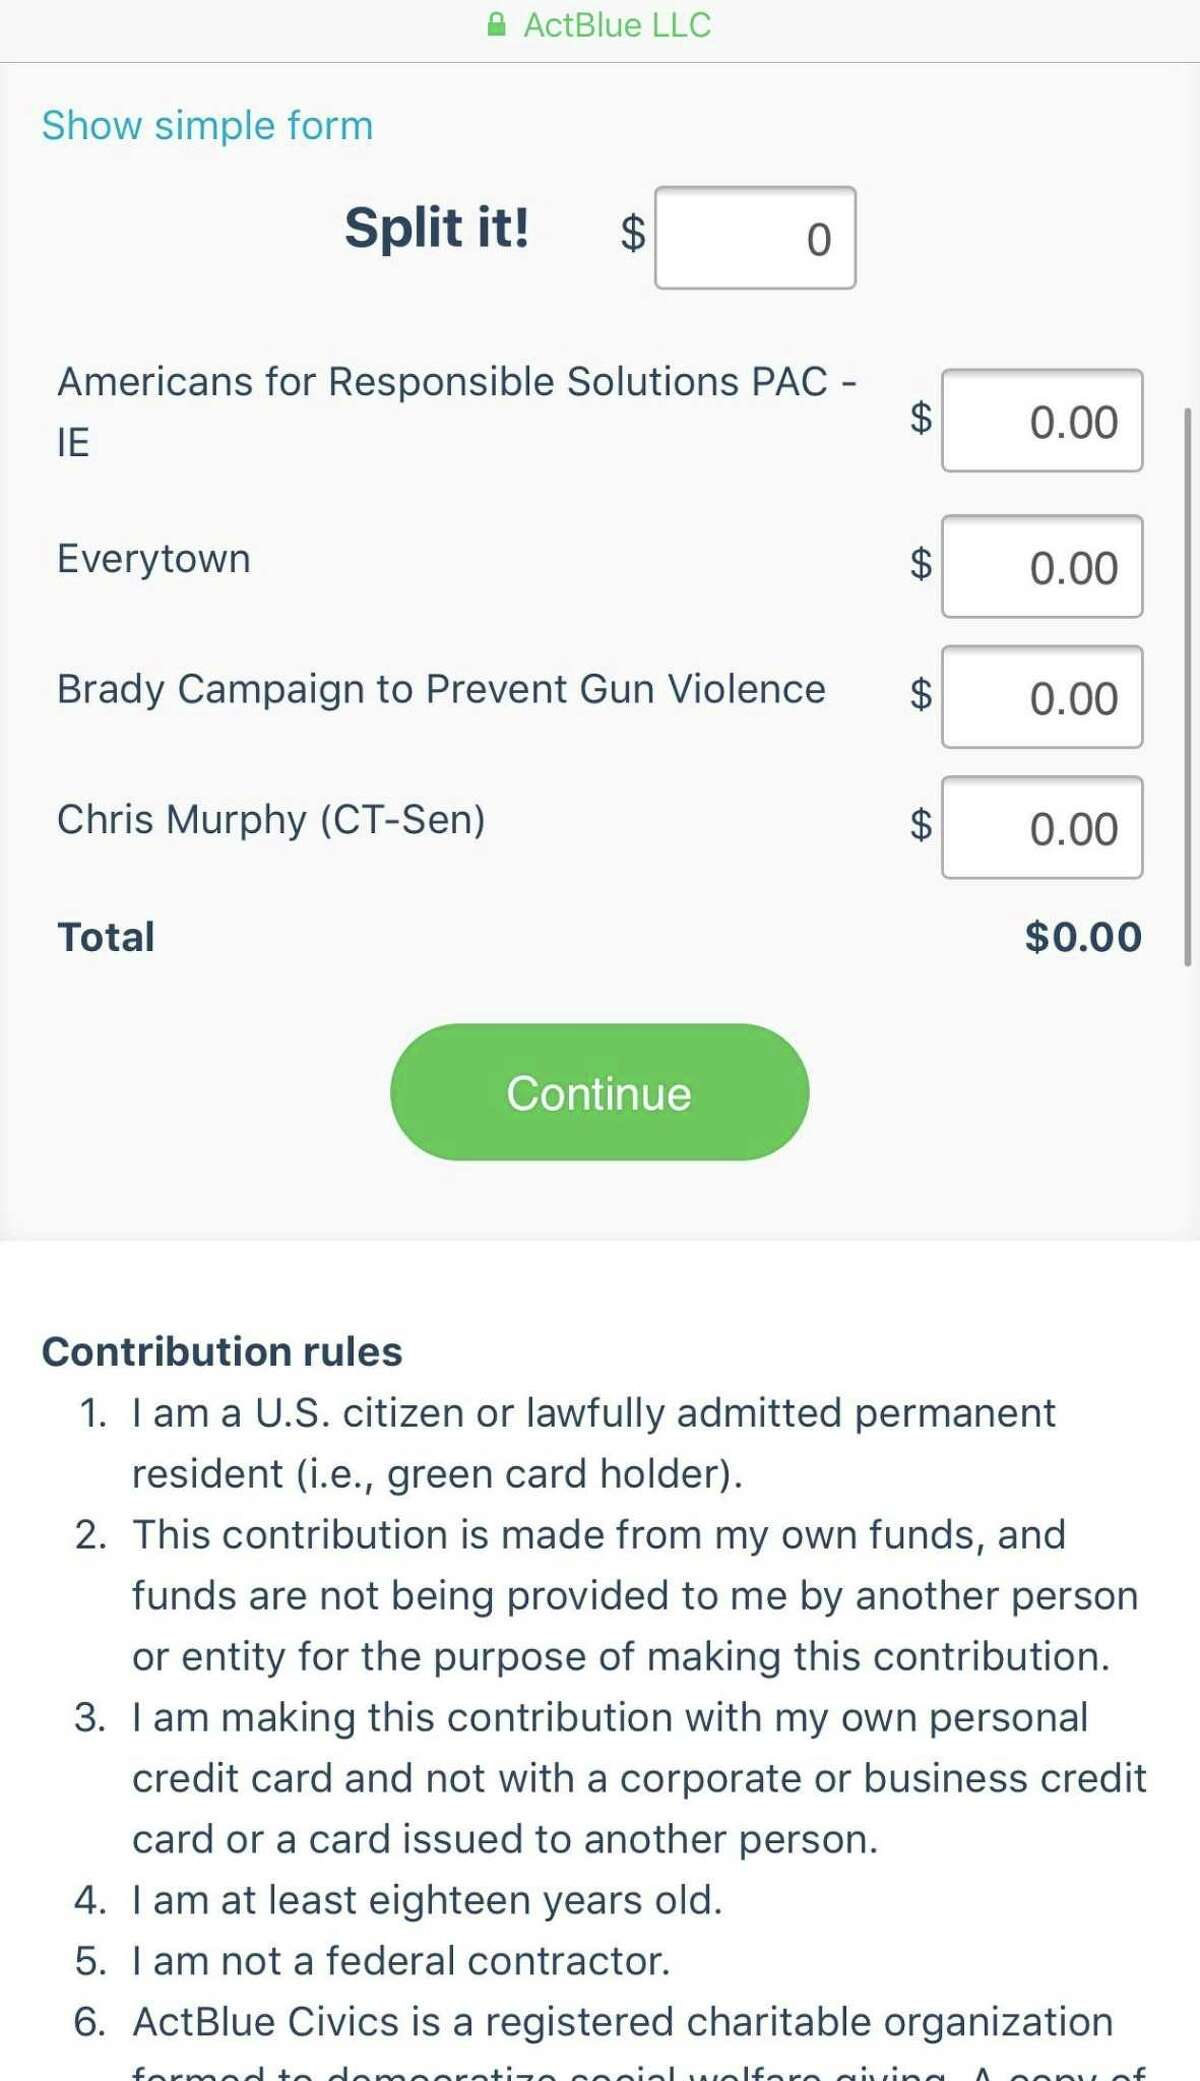 A fundraising link sent by Chris Murphy to his supporters urging them to give money to gun control groups after the Las Vegas massacre also allowed them to earmark funds for the Democrat's 2018 Senate re-election campaign. Oct. 3, 2017.